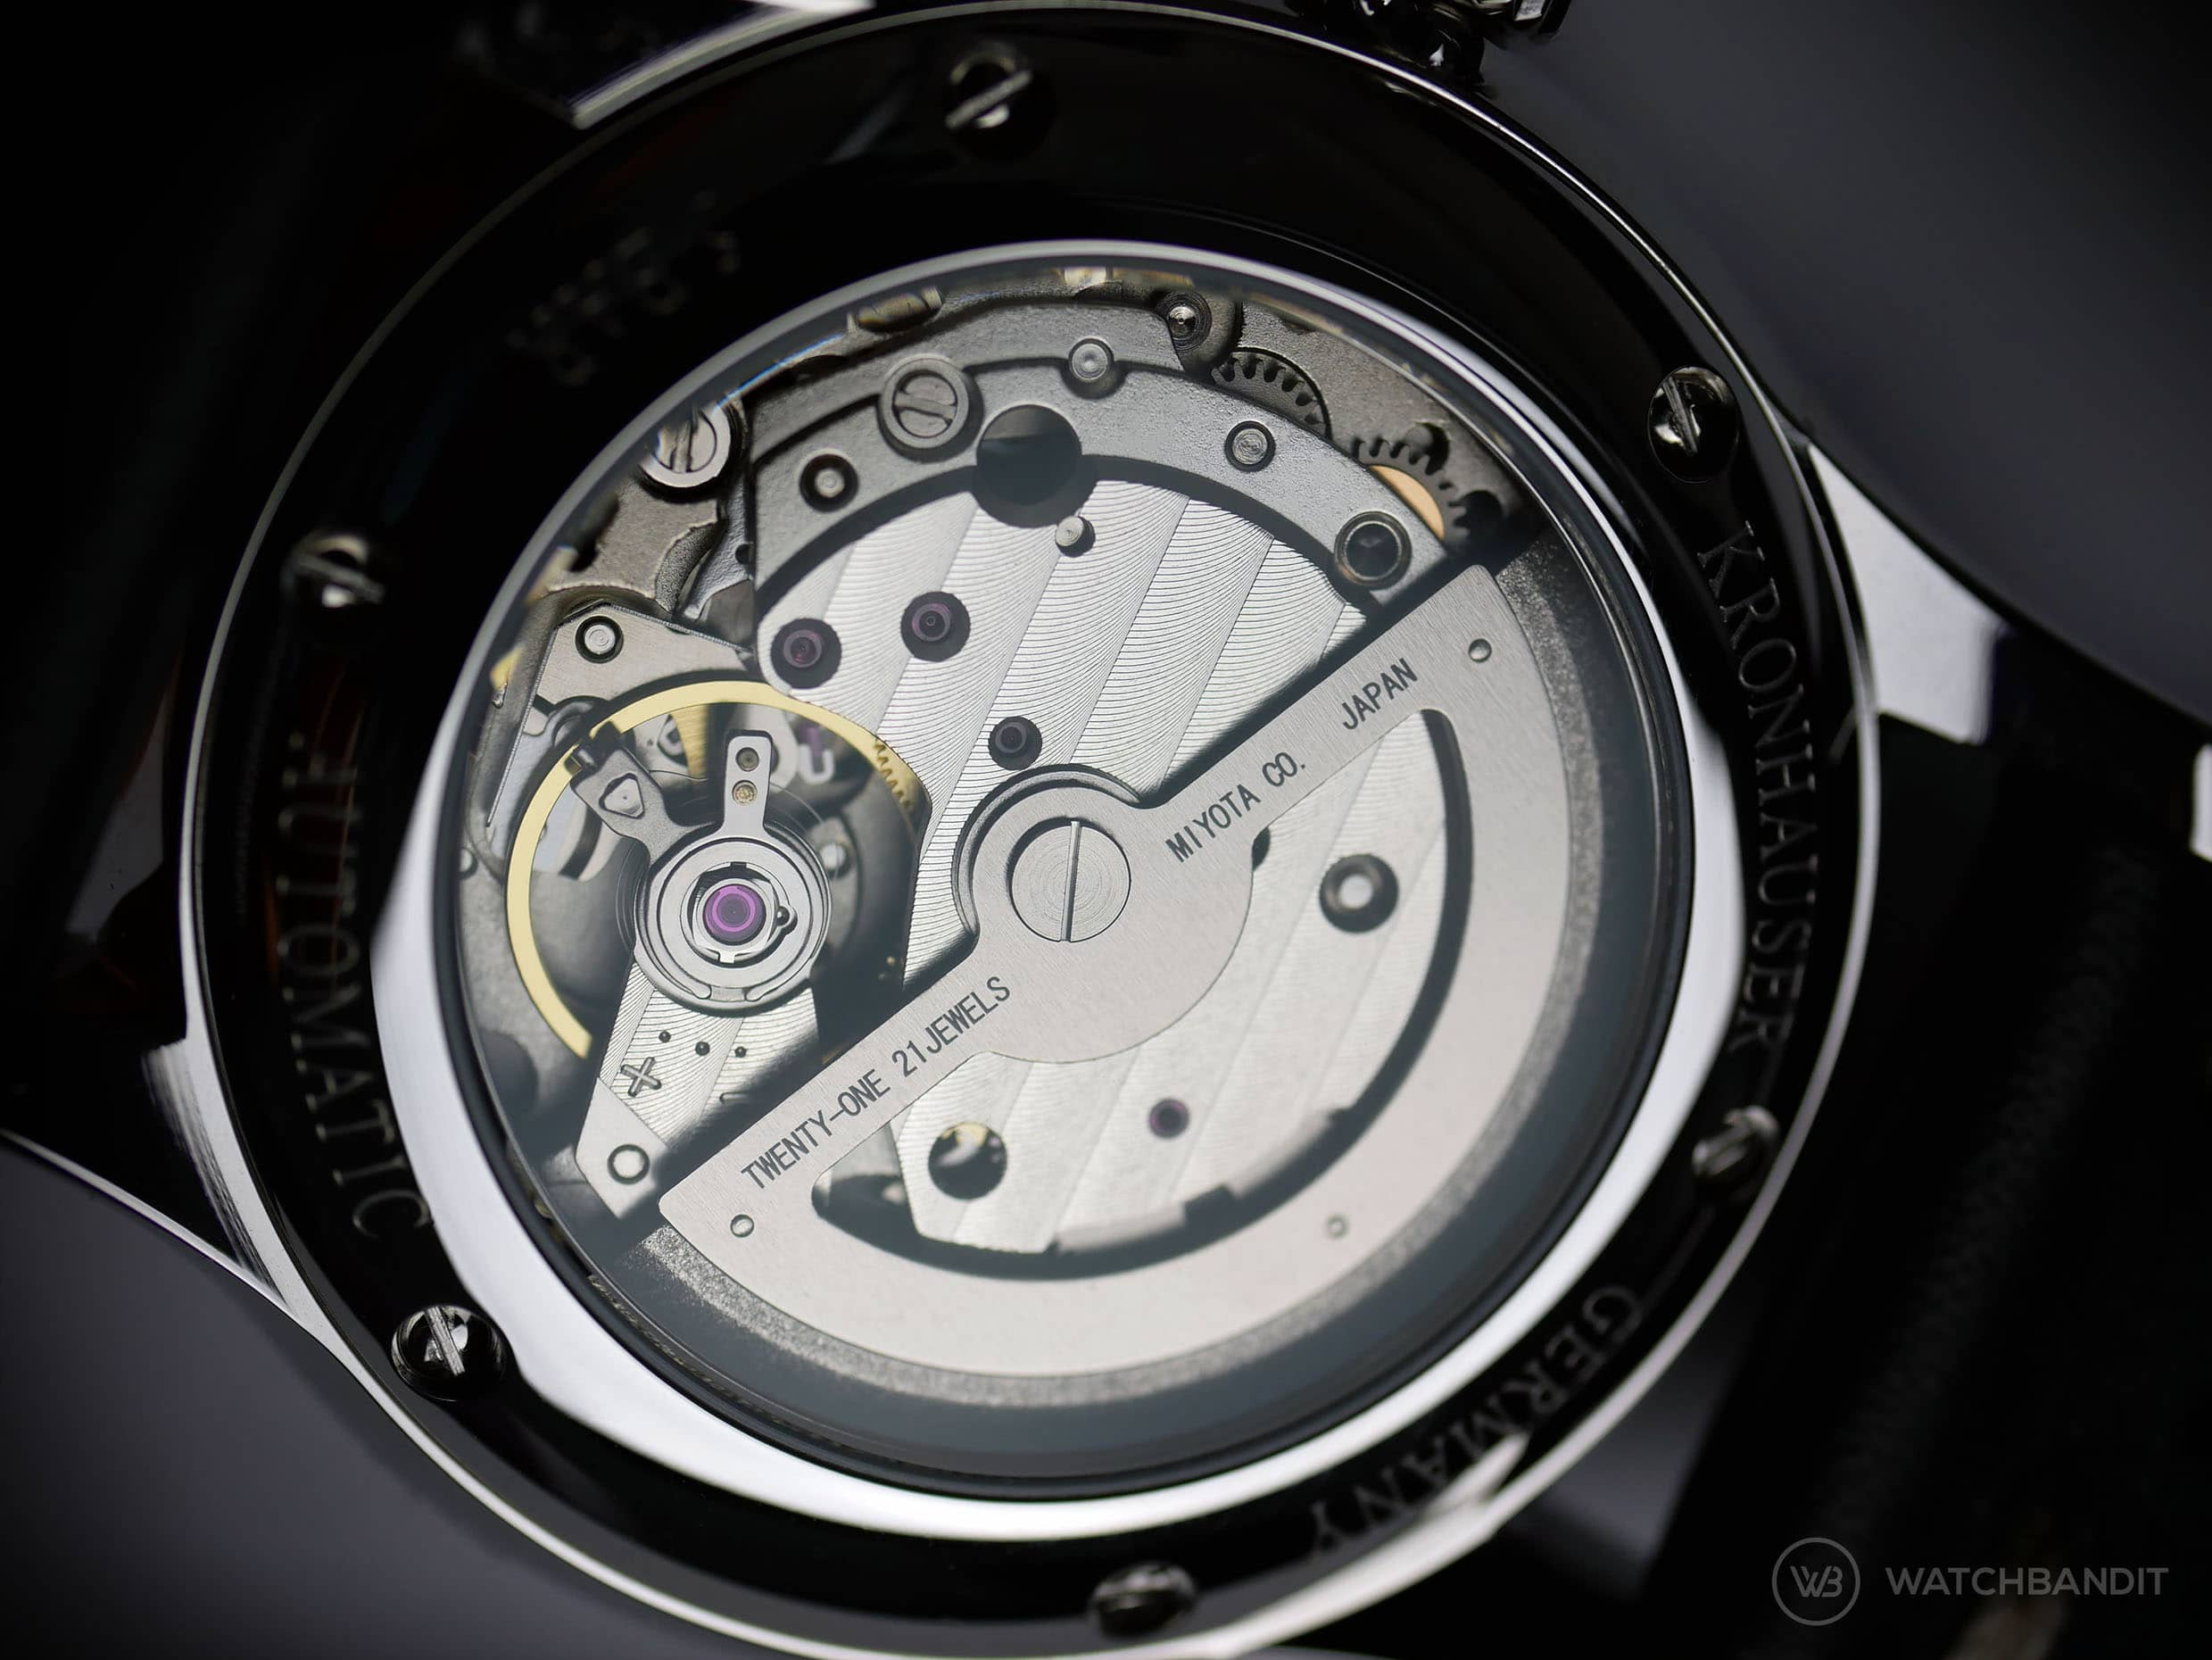 Kronhauser Movement Miyota 821A automatic